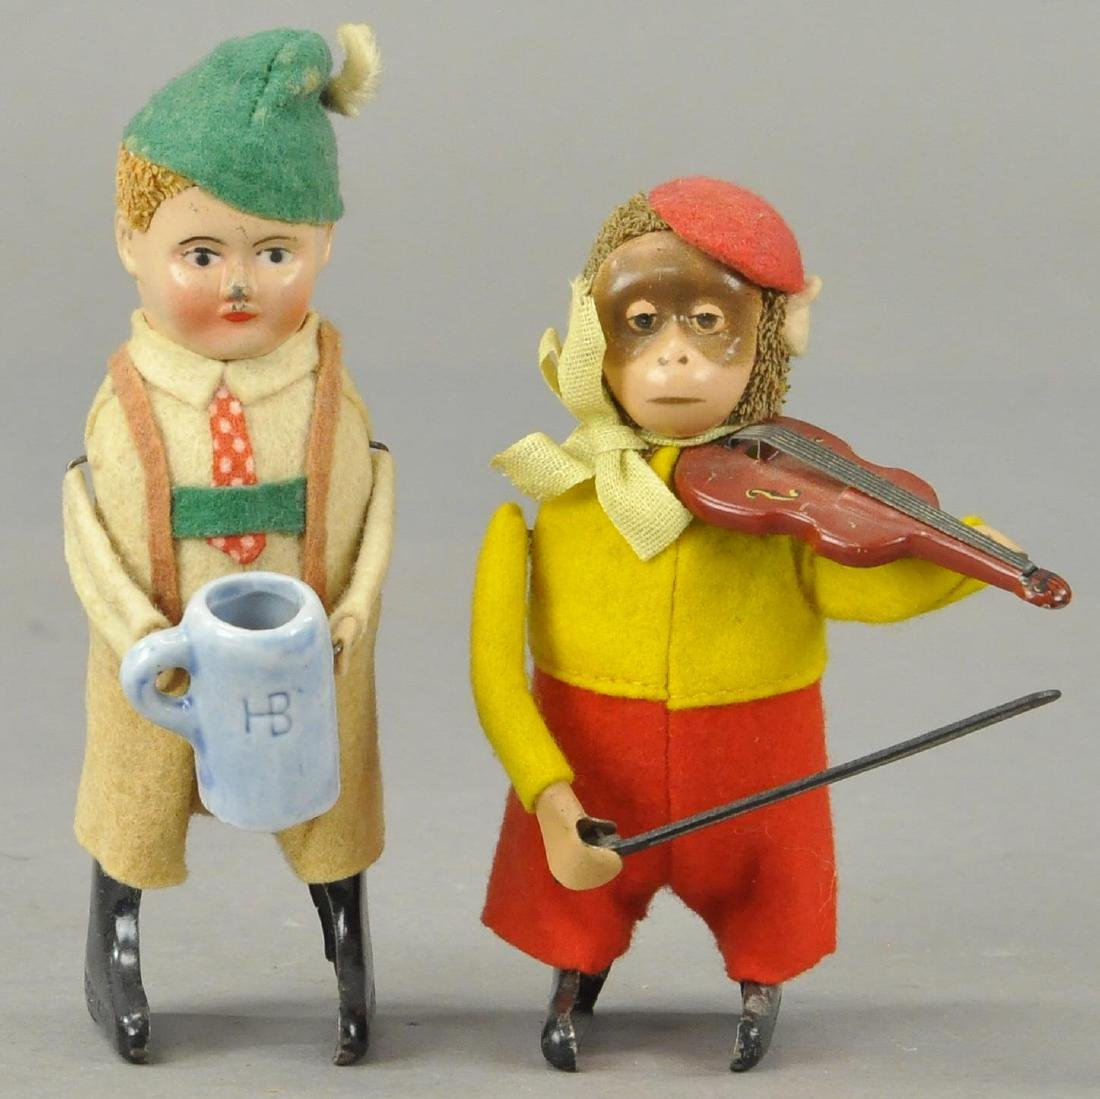 TWO SCHUCO FIGURES - BAVARIAN/VIOLIN